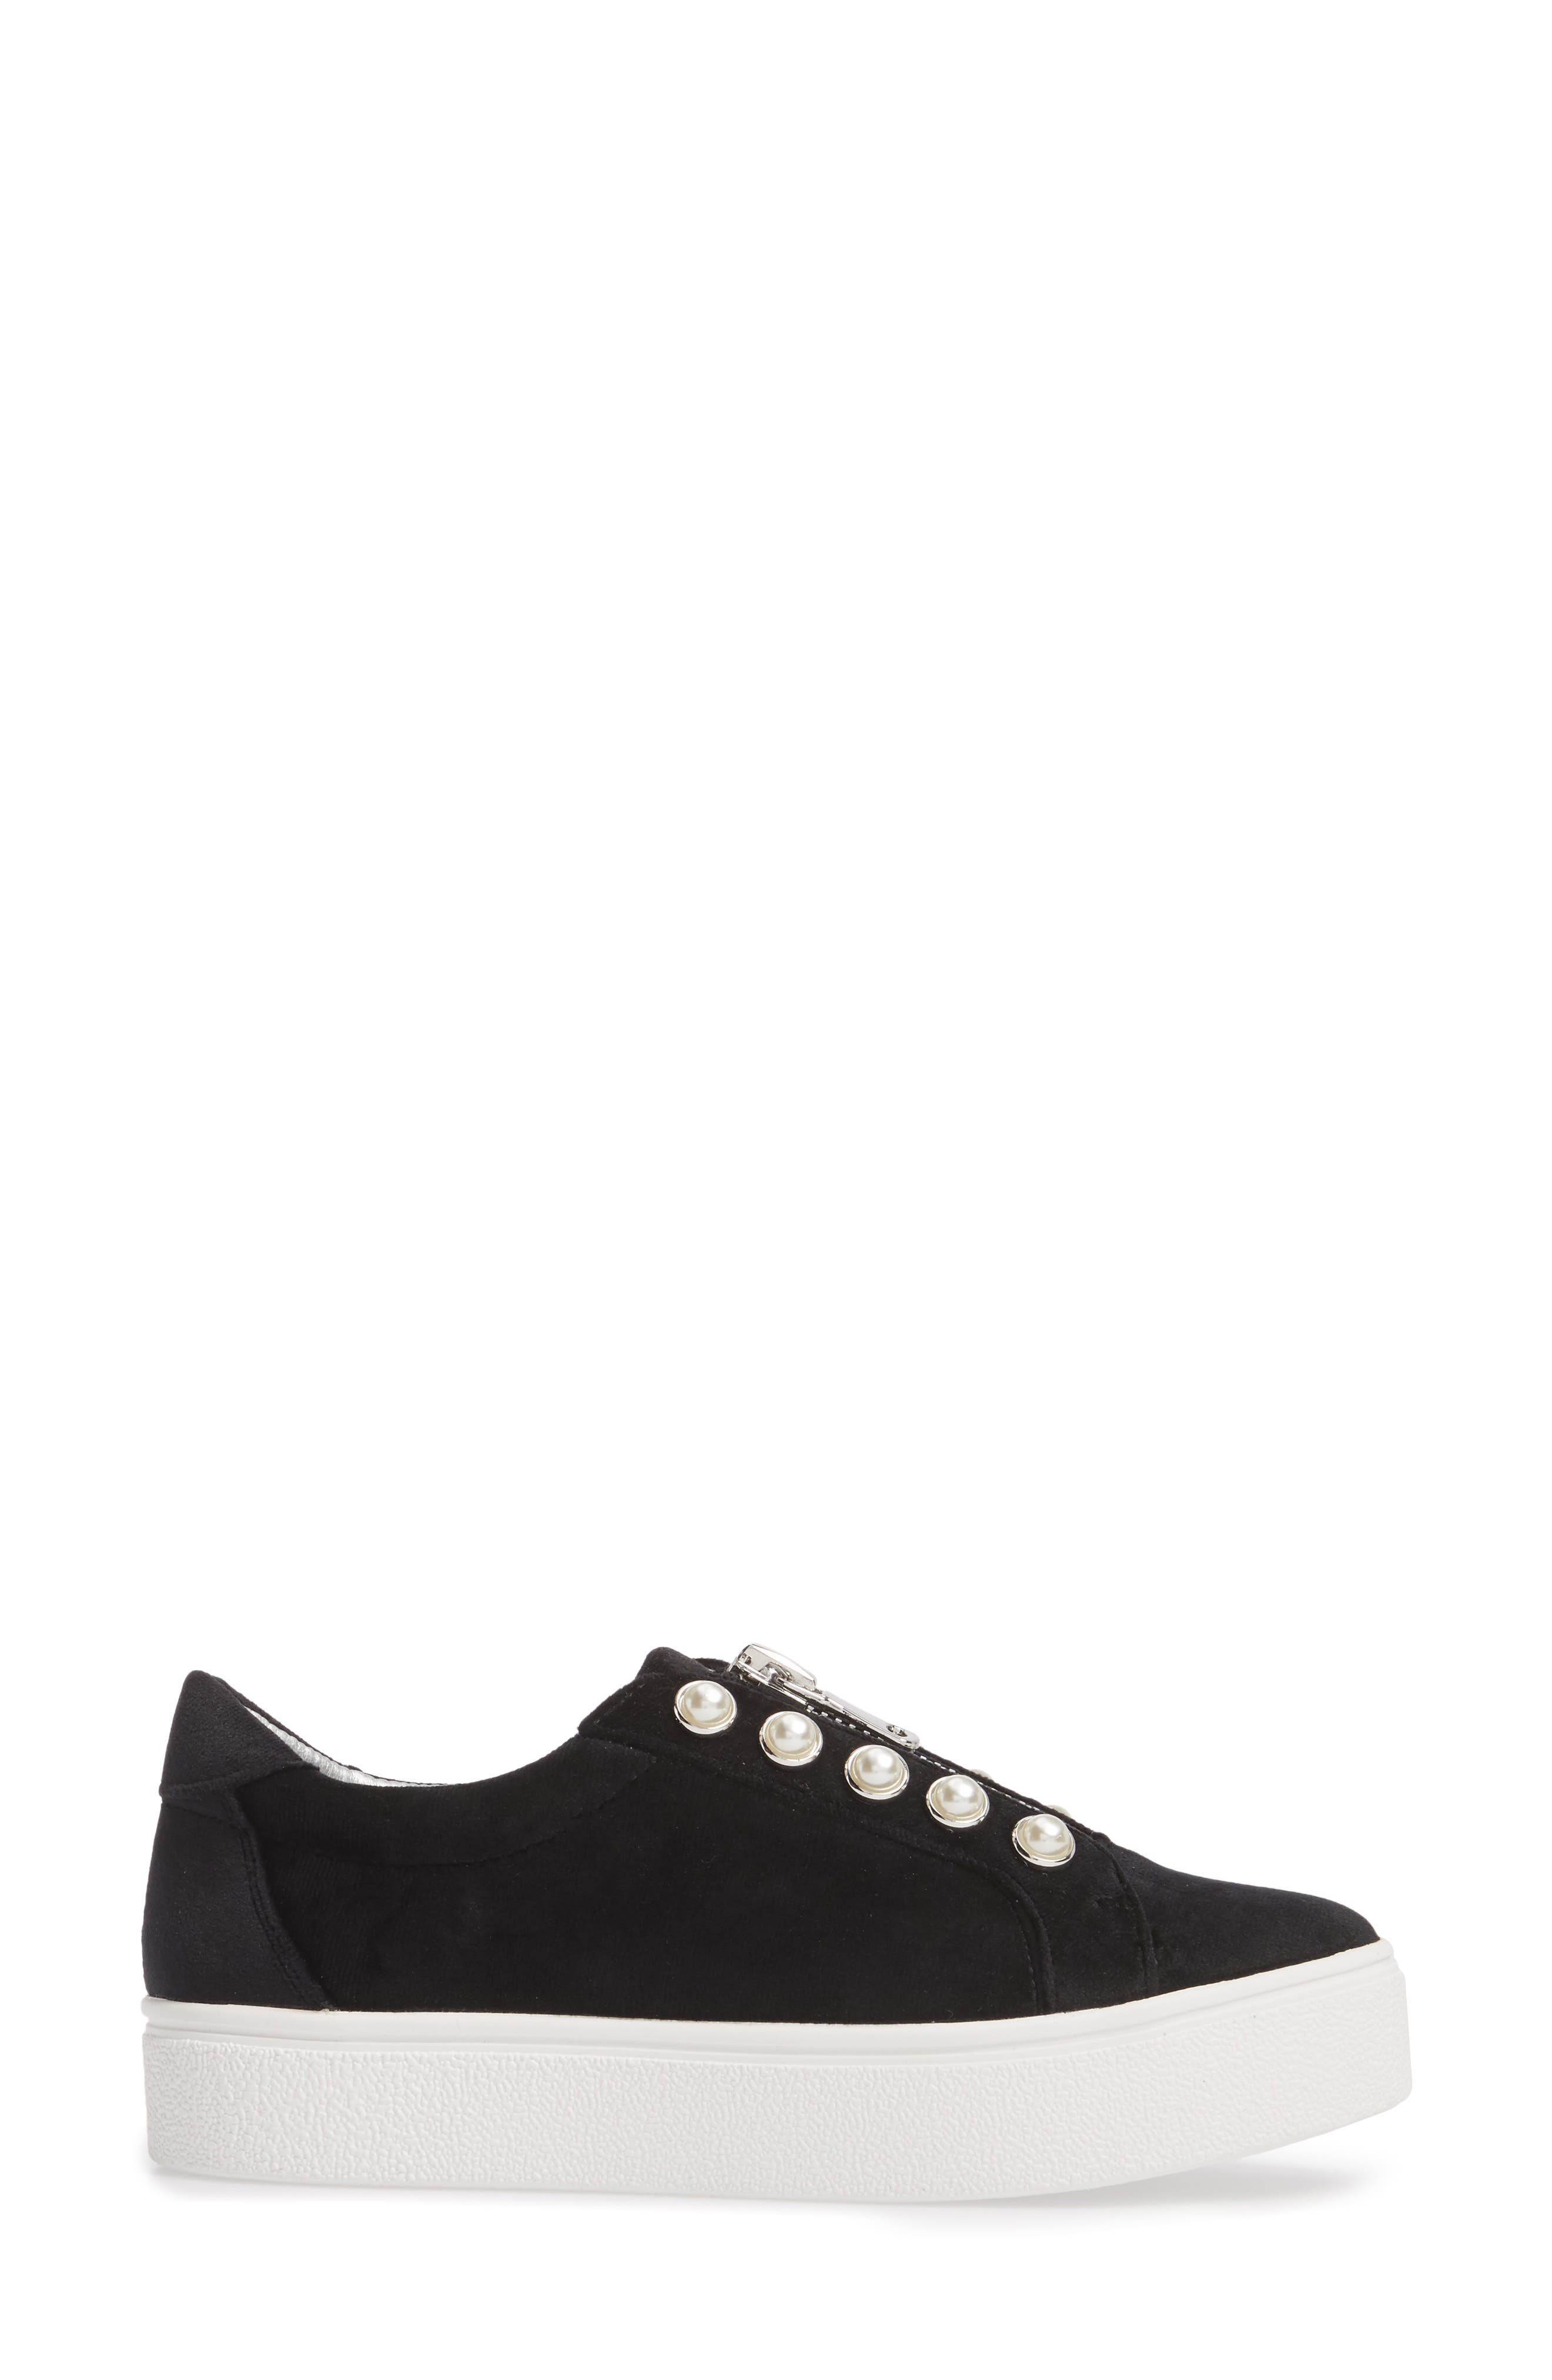 Lynn Embellished Platform Sneaker,                             Alternate thumbnail 3, color,                             Black Velvet